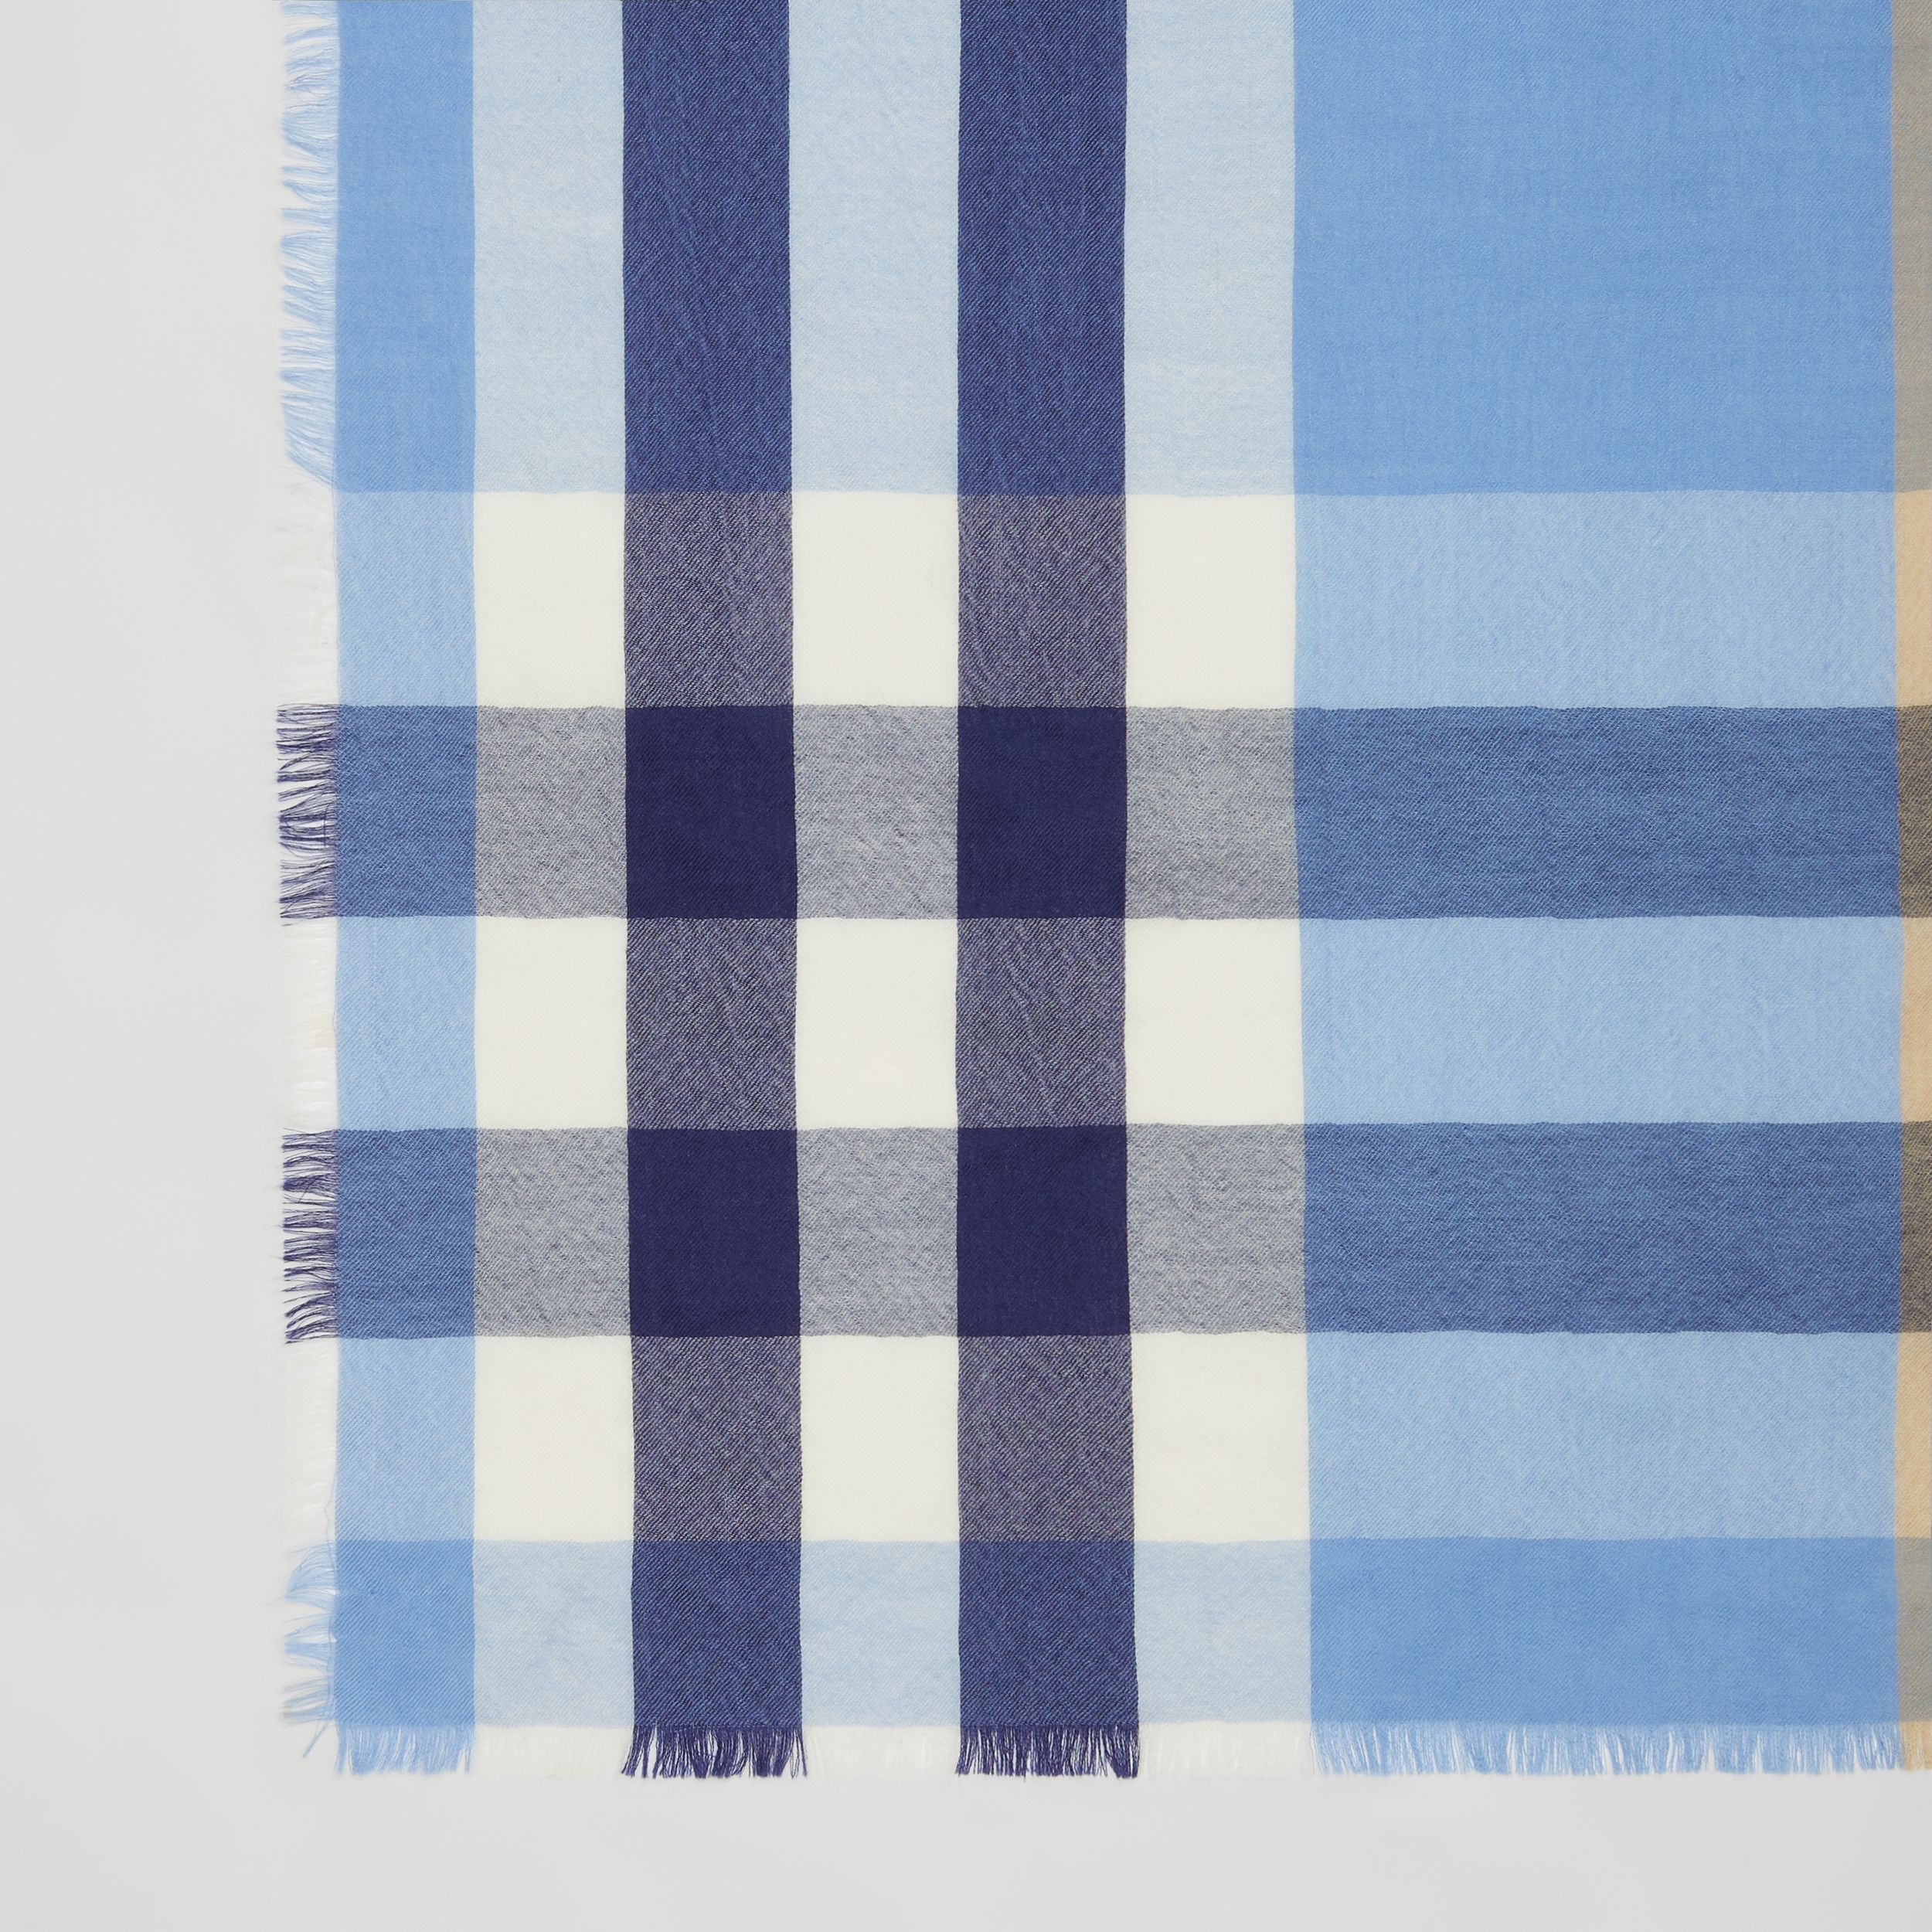 Lightweight Check Cashmere Scarf in English Bluebell | Burberry - 2